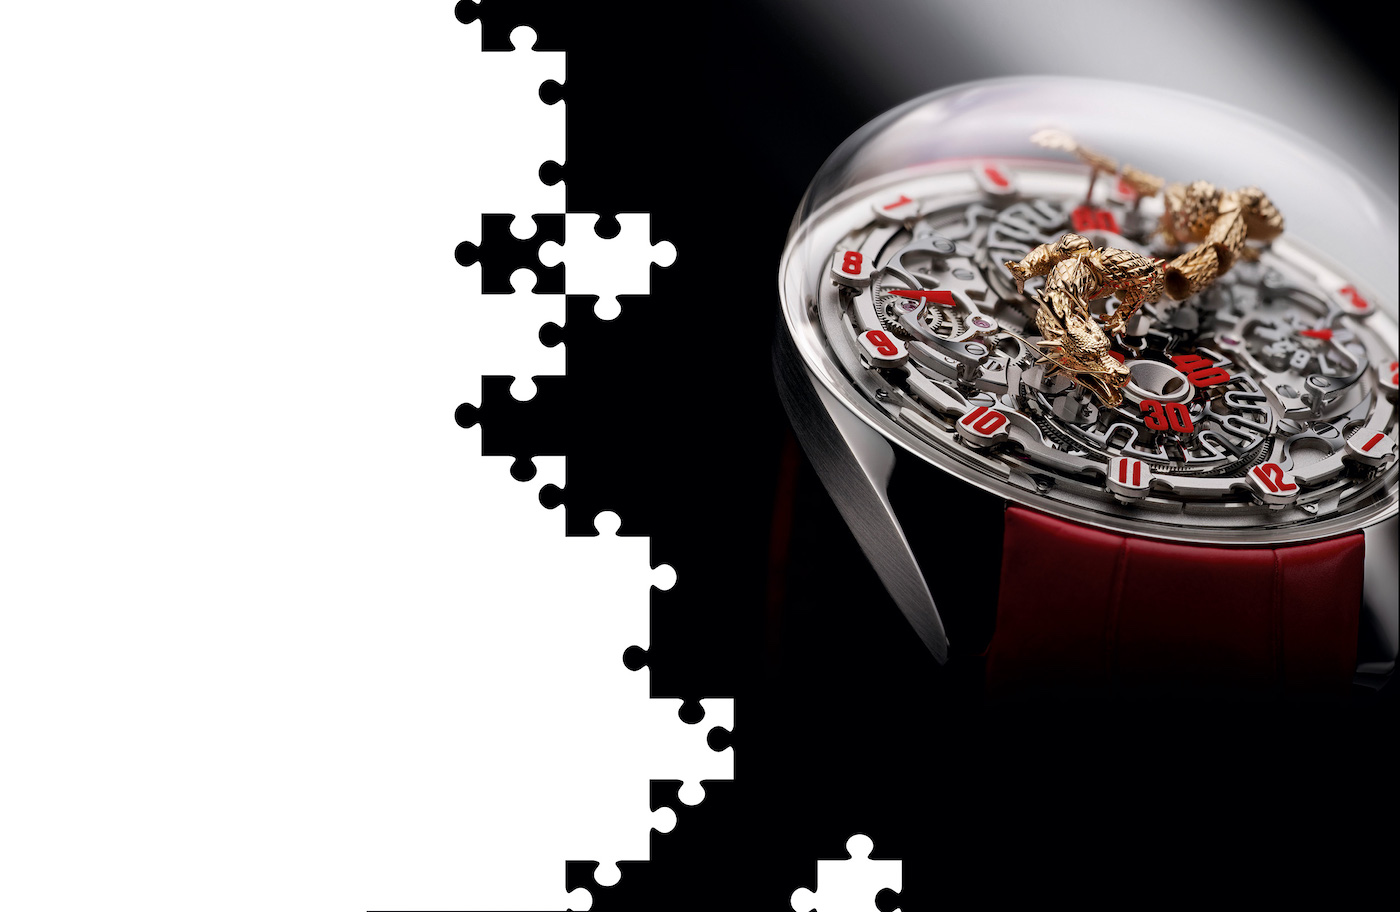 Superlative watchmaking